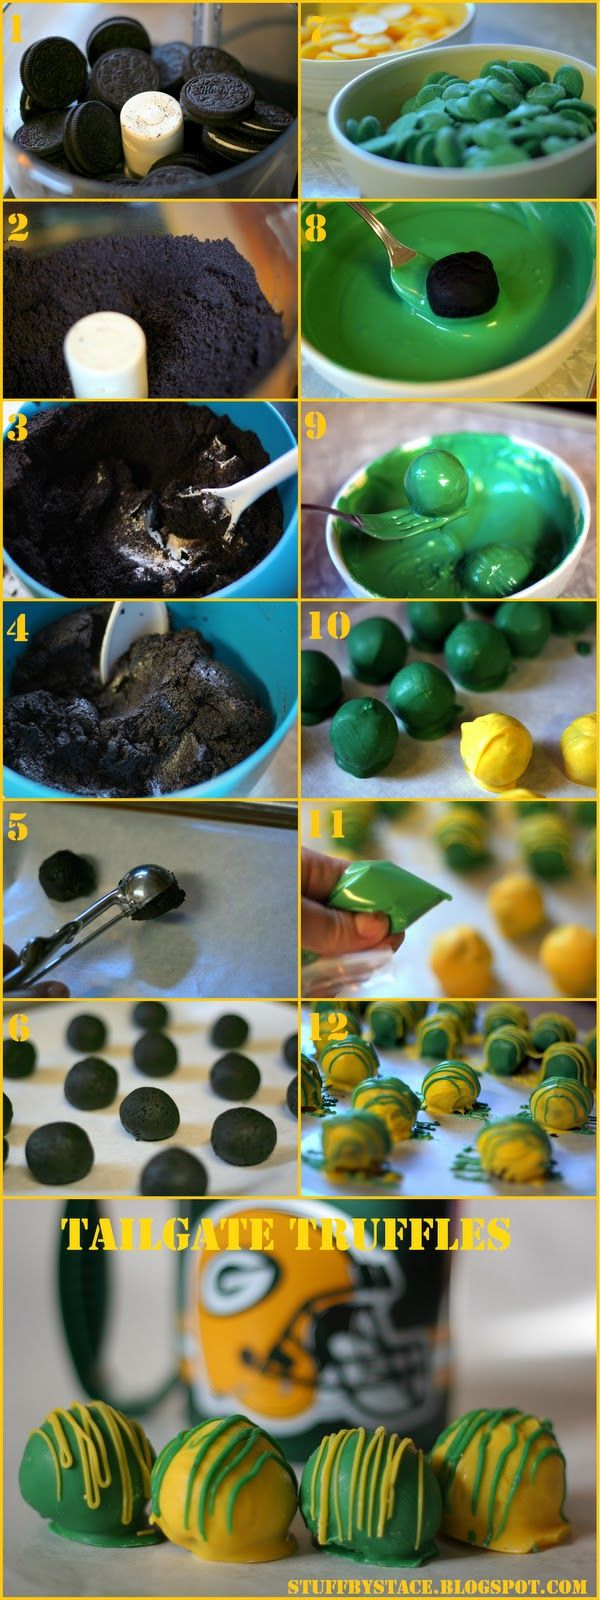 packer tailgate app: Football Party Idea, Green Bay Packer, Color, Football Party Dessert, Oreo Ball, Football Game Food, Football Dessert, Football Party Food, Blue And White